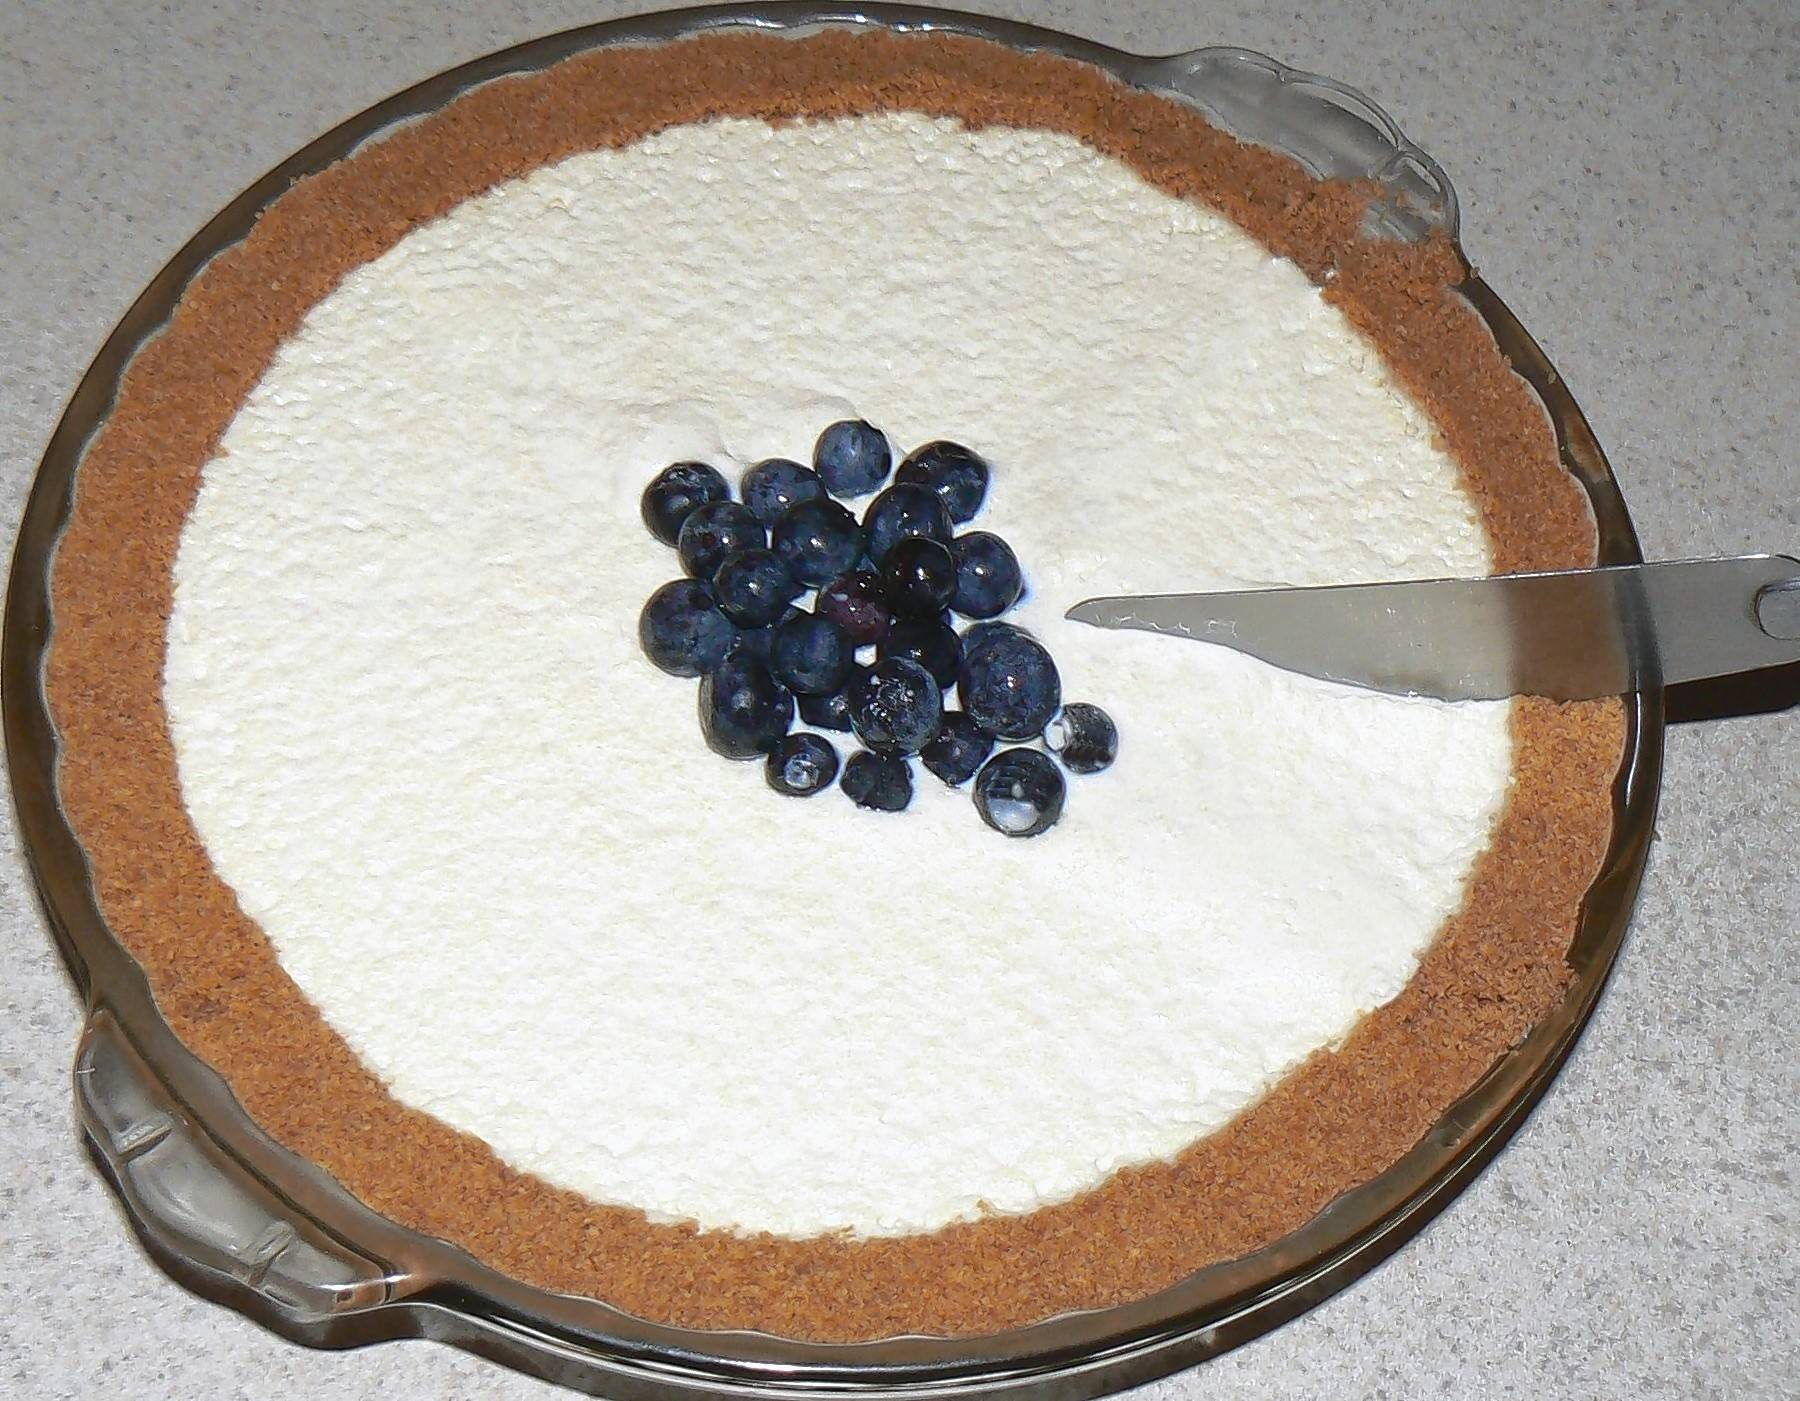 A refreshing, light and slimmed down version of a no-bake cheesecake for hot weather dining.